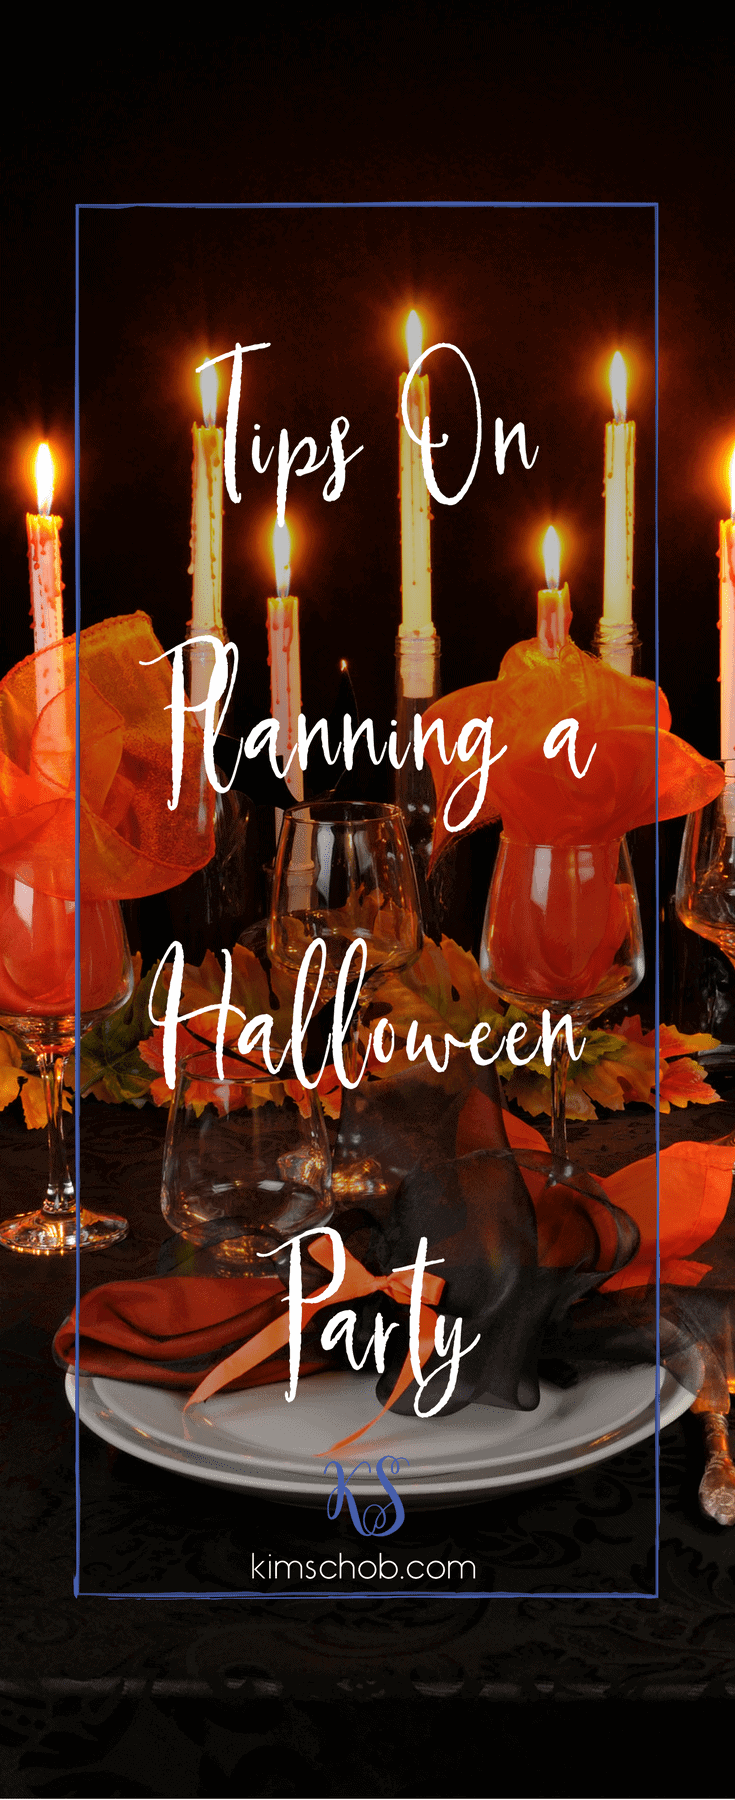 Tips On Planning a Halloween Party | kimschob.com #halloweenpartytips #halloween #partytips